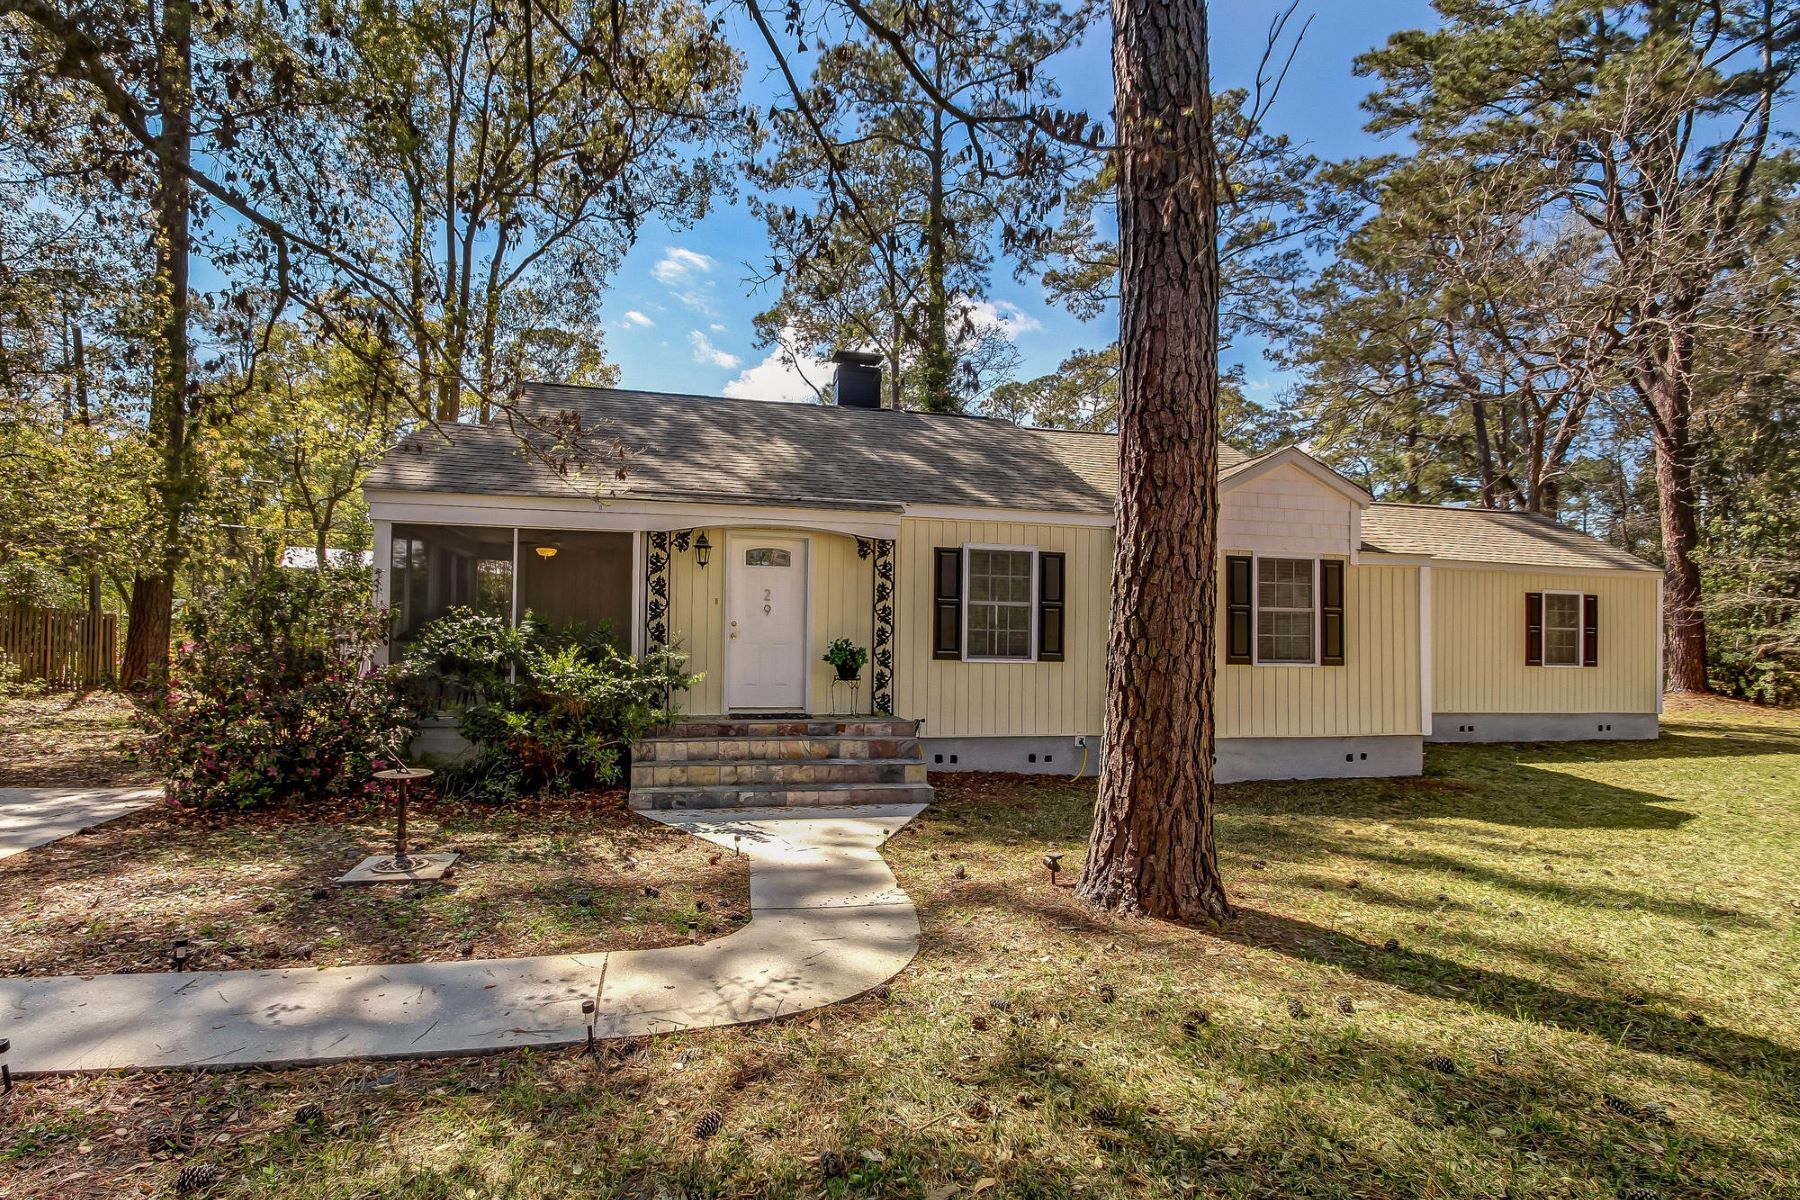 Single Family Home for Sale at 29 Nancy Place 29 Nancy Place Savannah, Georgia 31406 United States